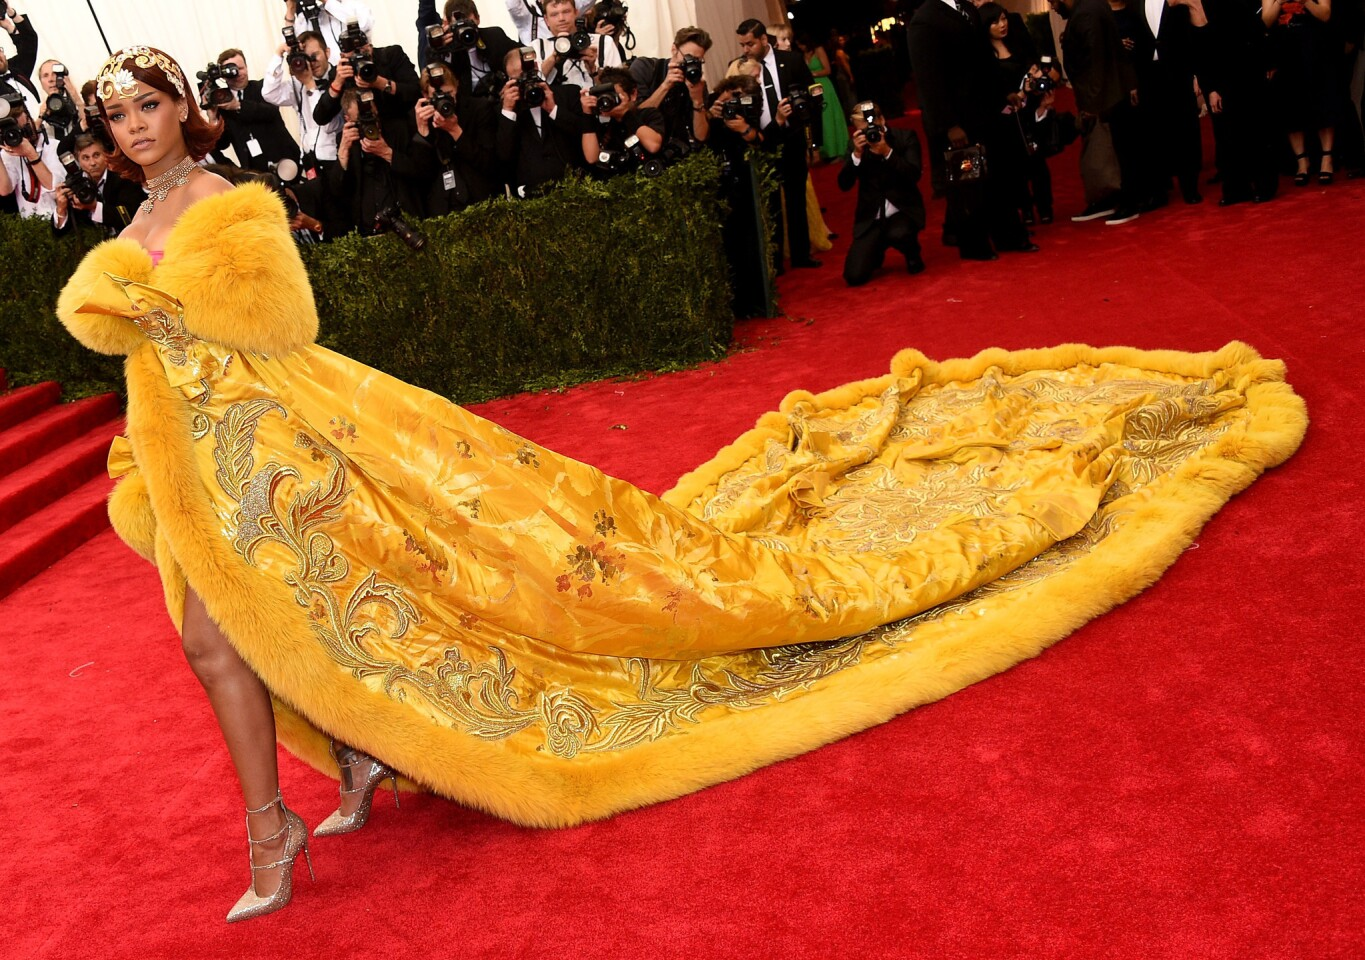 At the 2015 Met Gala, Rihanna's elaborate cape, made by Chinese designer Guo Pei, was so sweepingly huge that it required several train-handlers to help her down the red carpet.